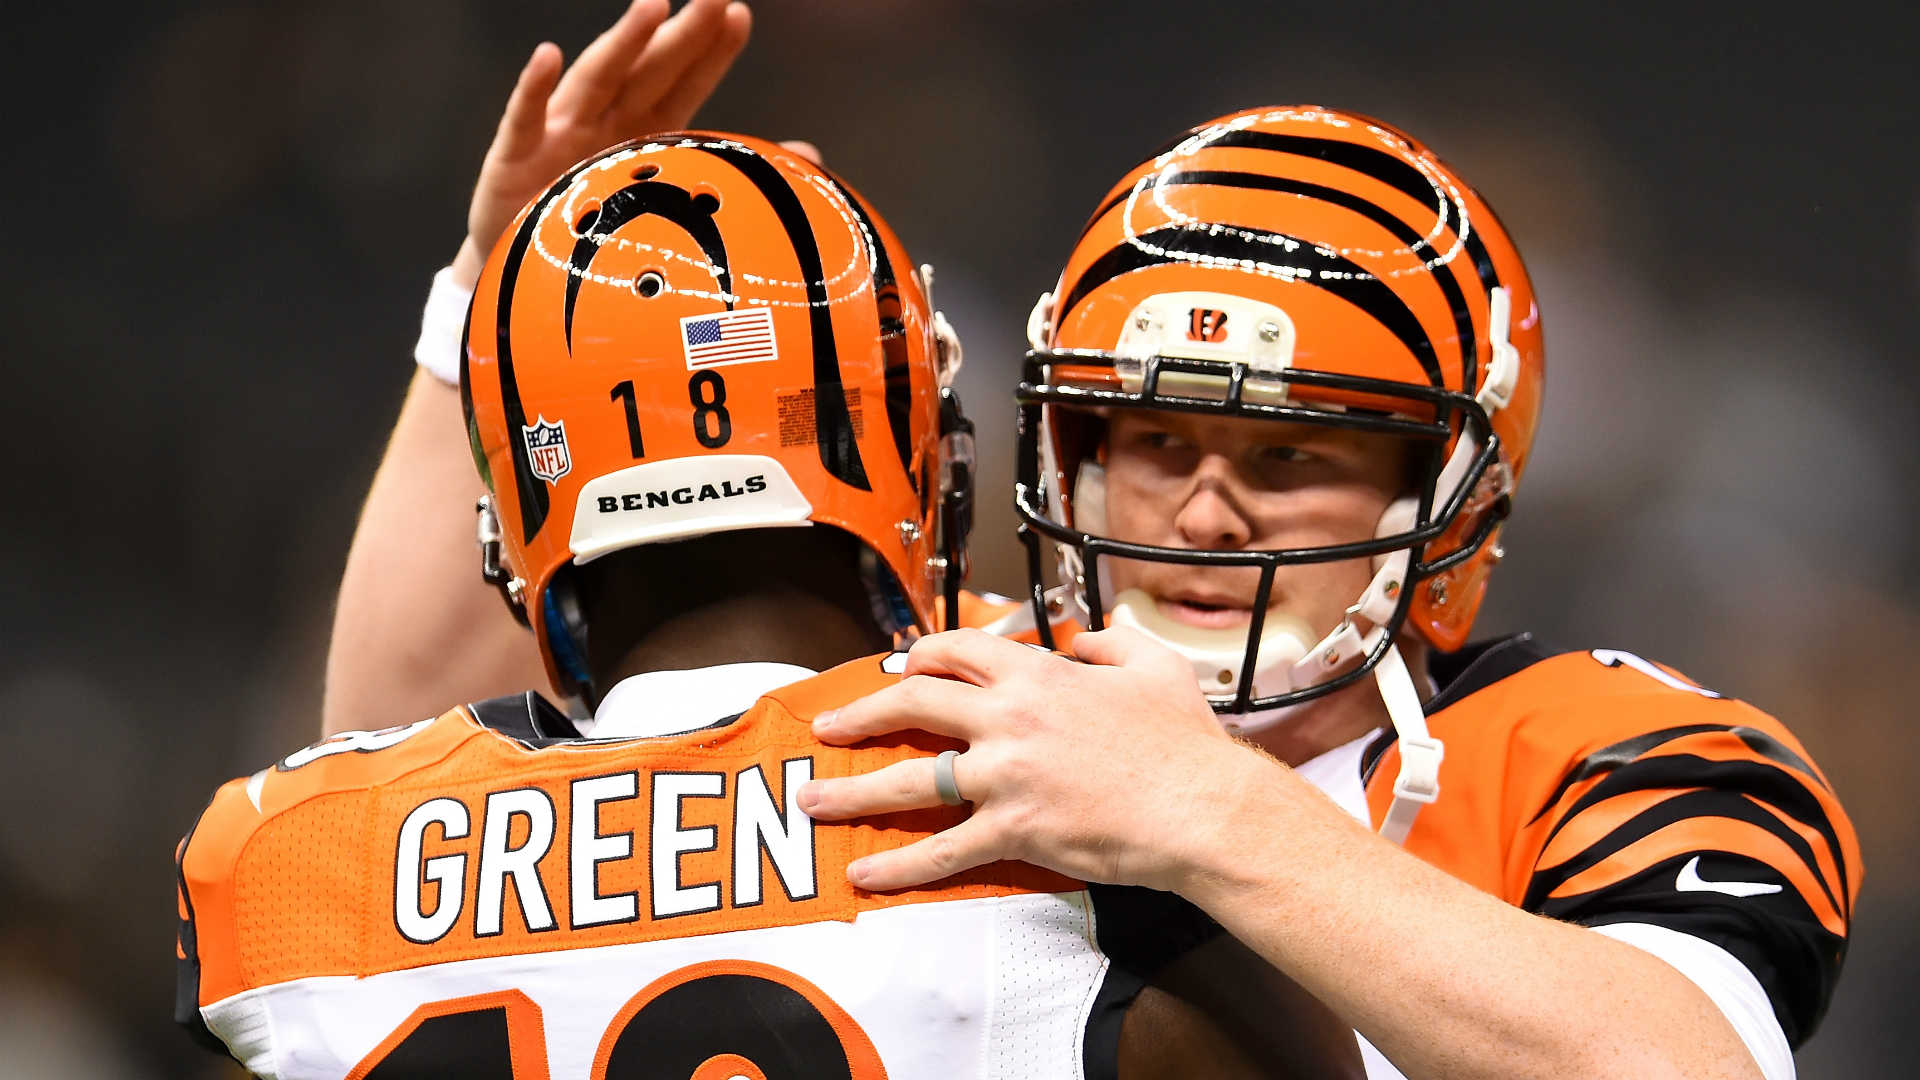 Monday night action report – Books on Bengals' side in lightly-bet prime time game